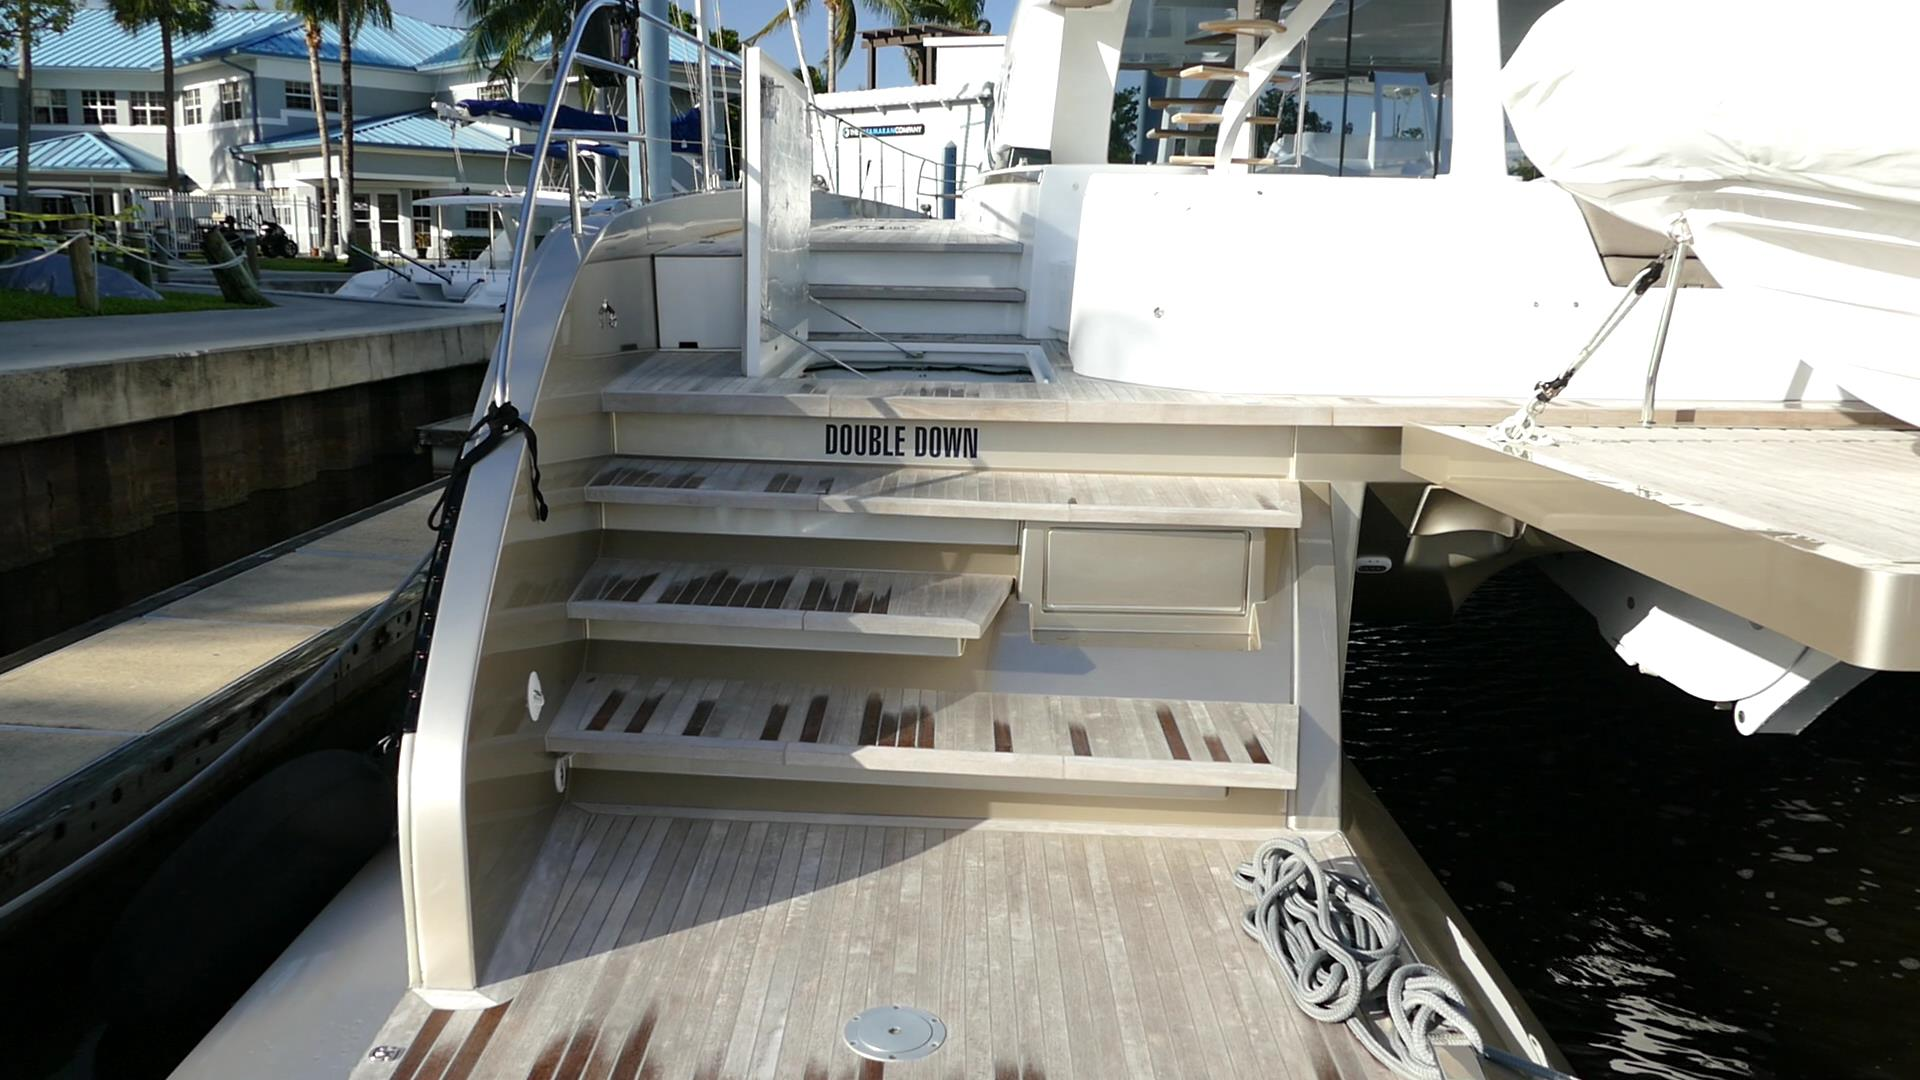 Catamarans DOUBLE DOWN, Manufacturer: LAGOON, Model Year: 2018, Length: 78ft, Model: Seventy 8, Condition: Used, Listing Status: Catamaran for Sale, Price: EUR 4595000